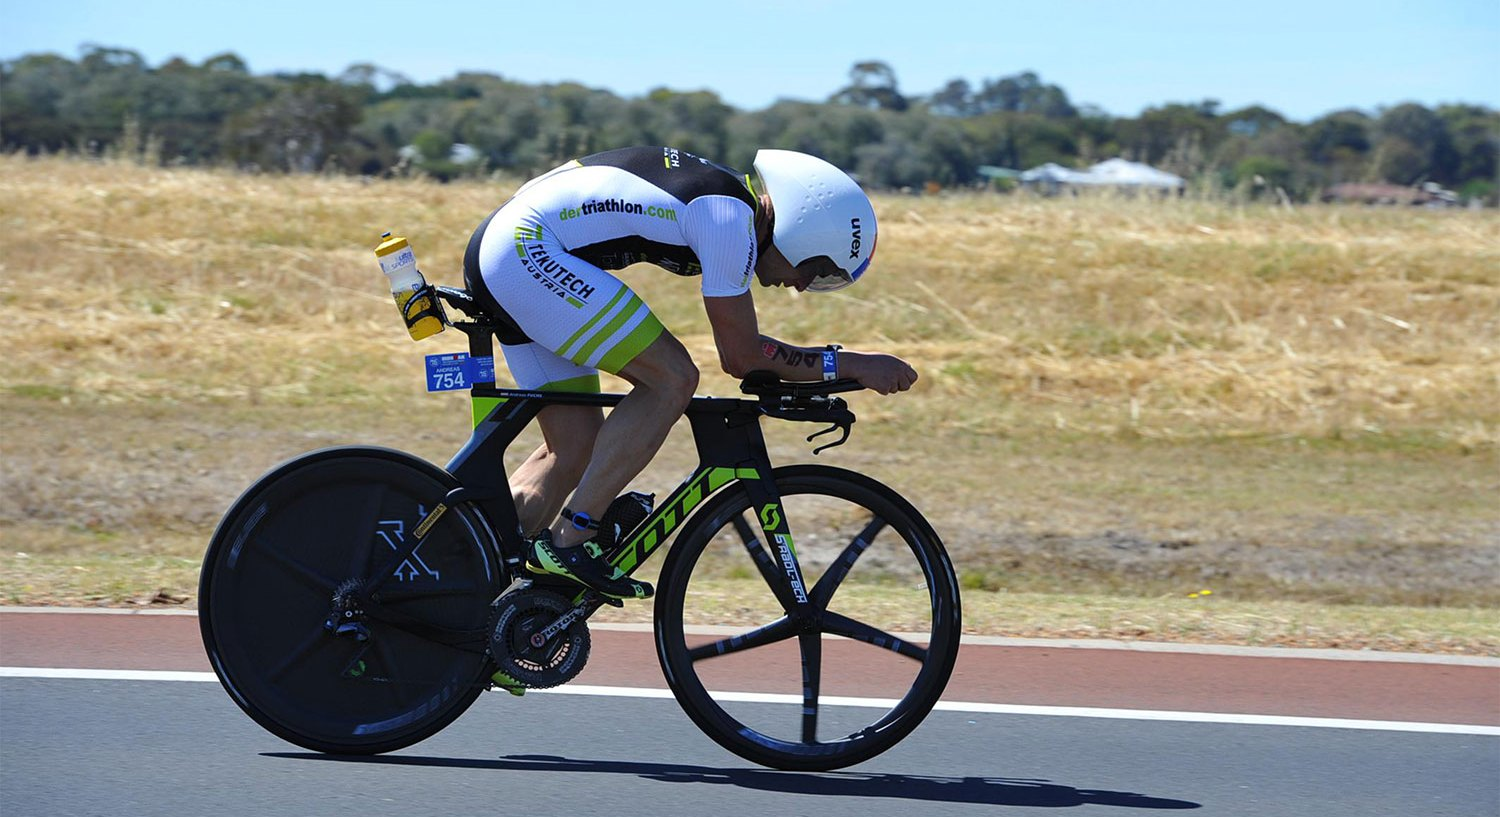 Andreas Fuchs qualifies at Ironman Australia